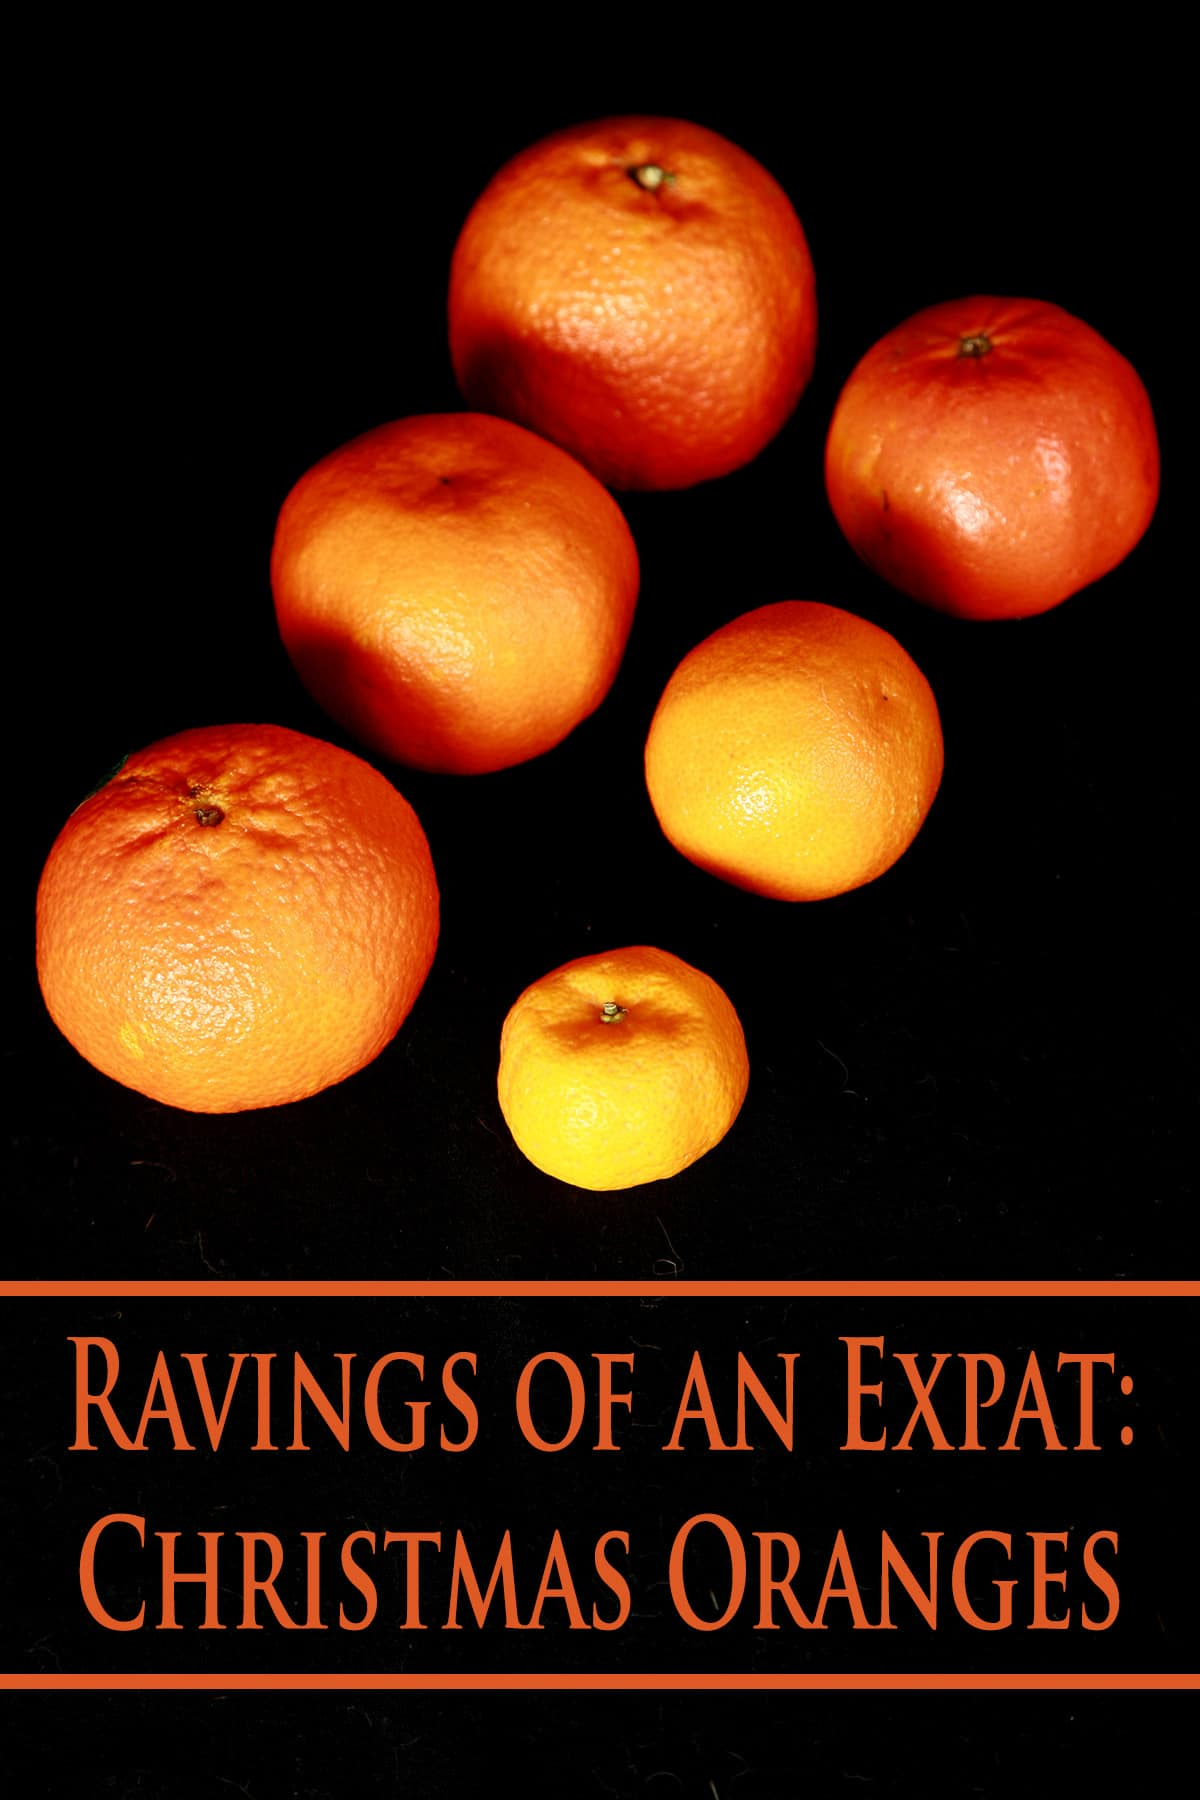 6 oranges on a black background, labelled Ravings of an Expat: Christmas Oranges.